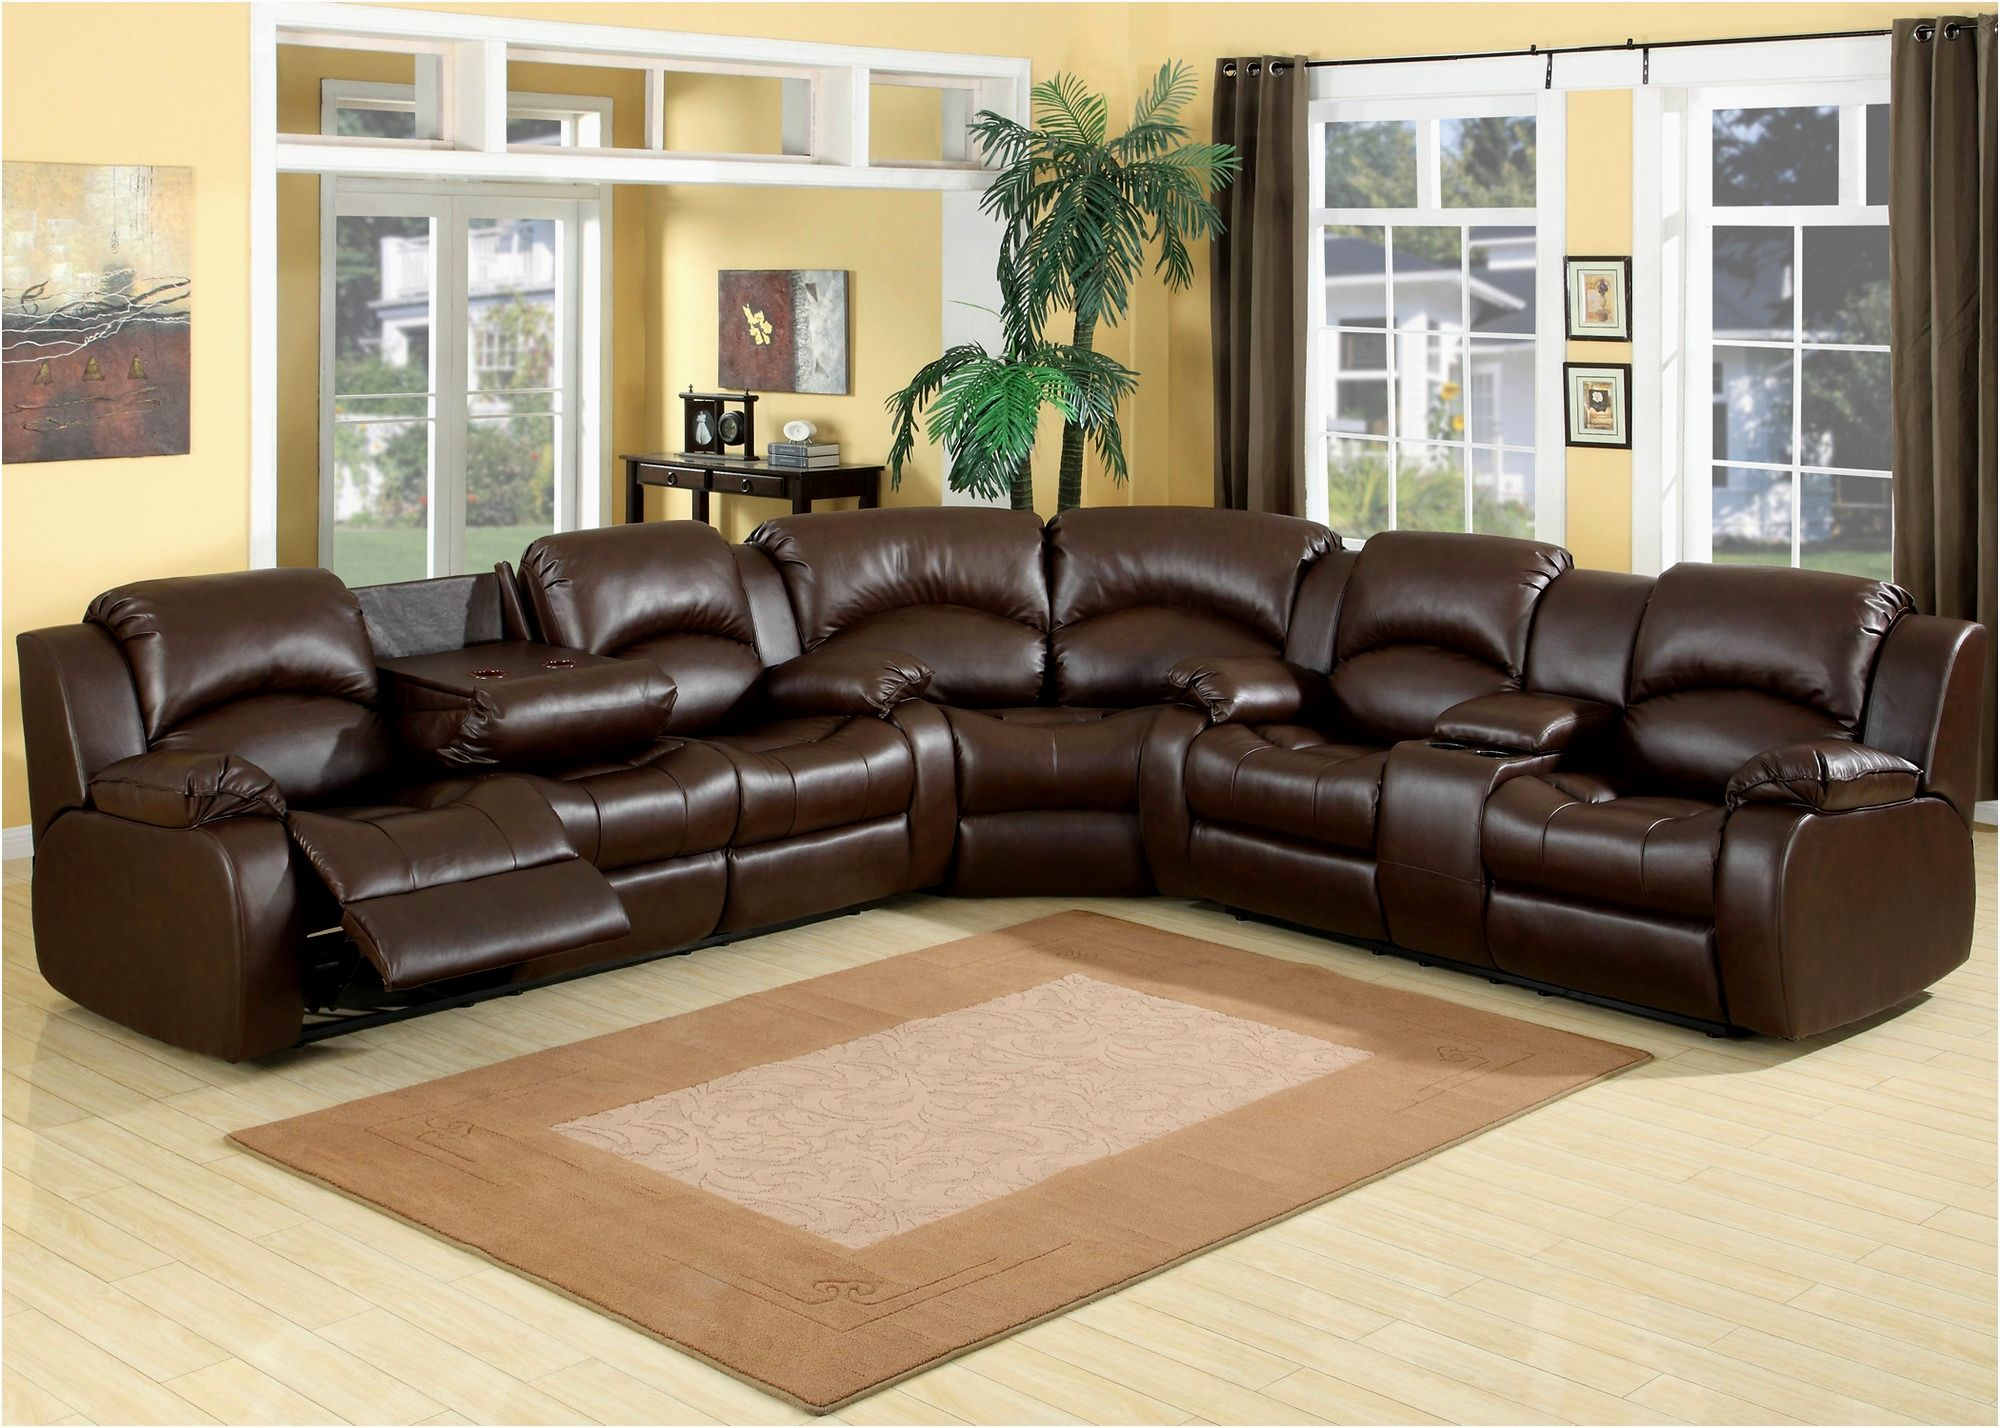 top costco furniture sofas photograph-Best Of Costco Furniture sofas Wallpaper